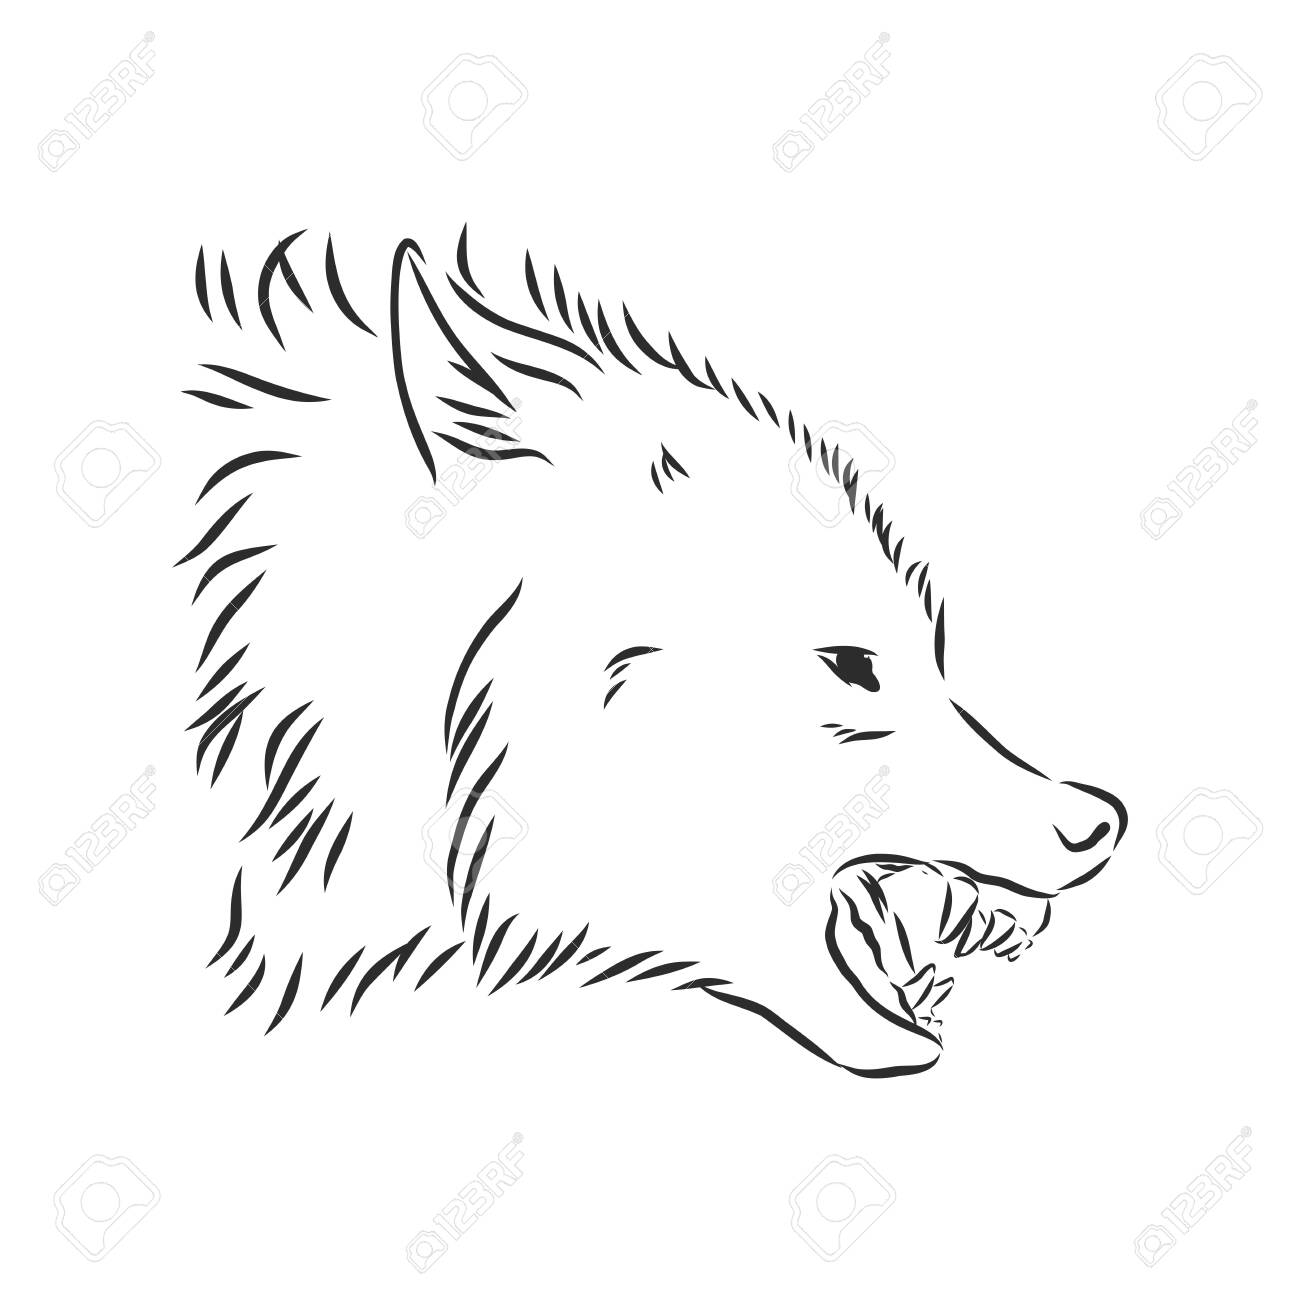 Angry Snarling Wolf Profile Head Ferocious Animal Profile Black Royalty Free Cliparts Vectors And Stock Illustration Image 146036693